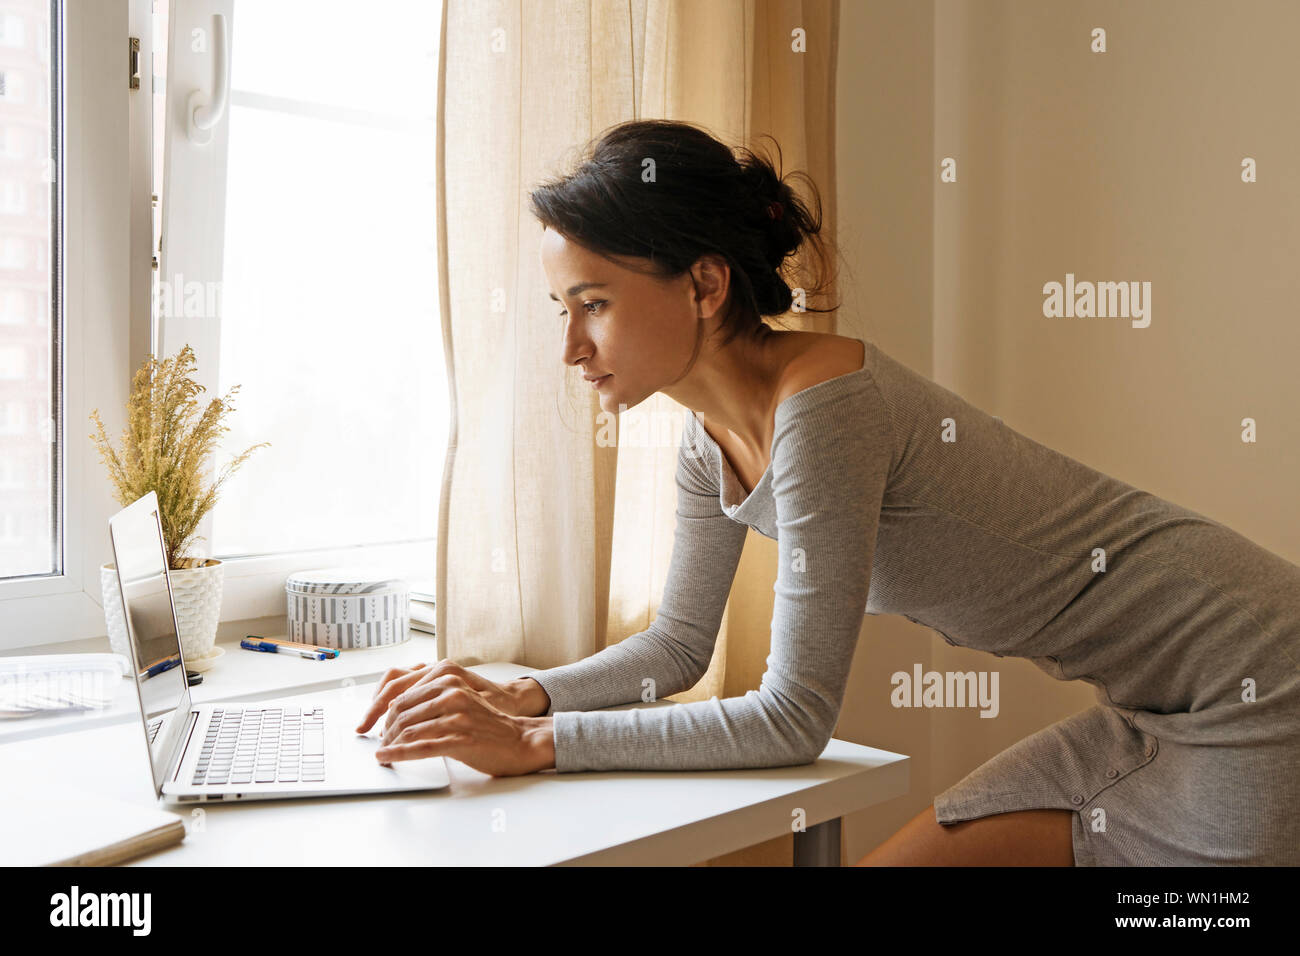 Woman Leaning On Table Using Laptop Stock Photo Alamy